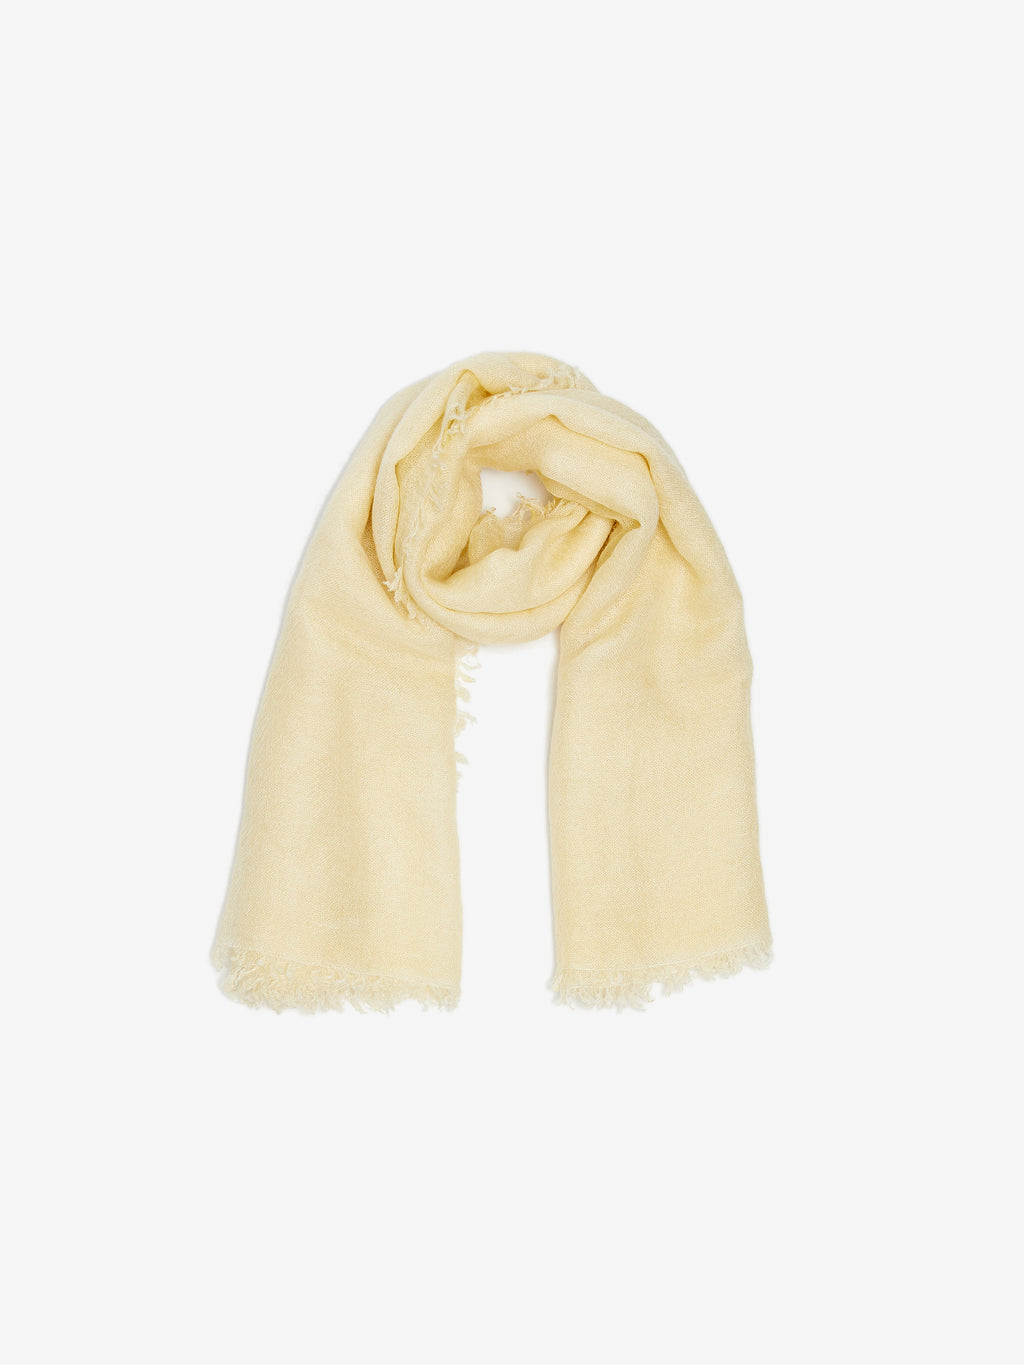 Faliero-Sarti-New-Lolly-Scarf